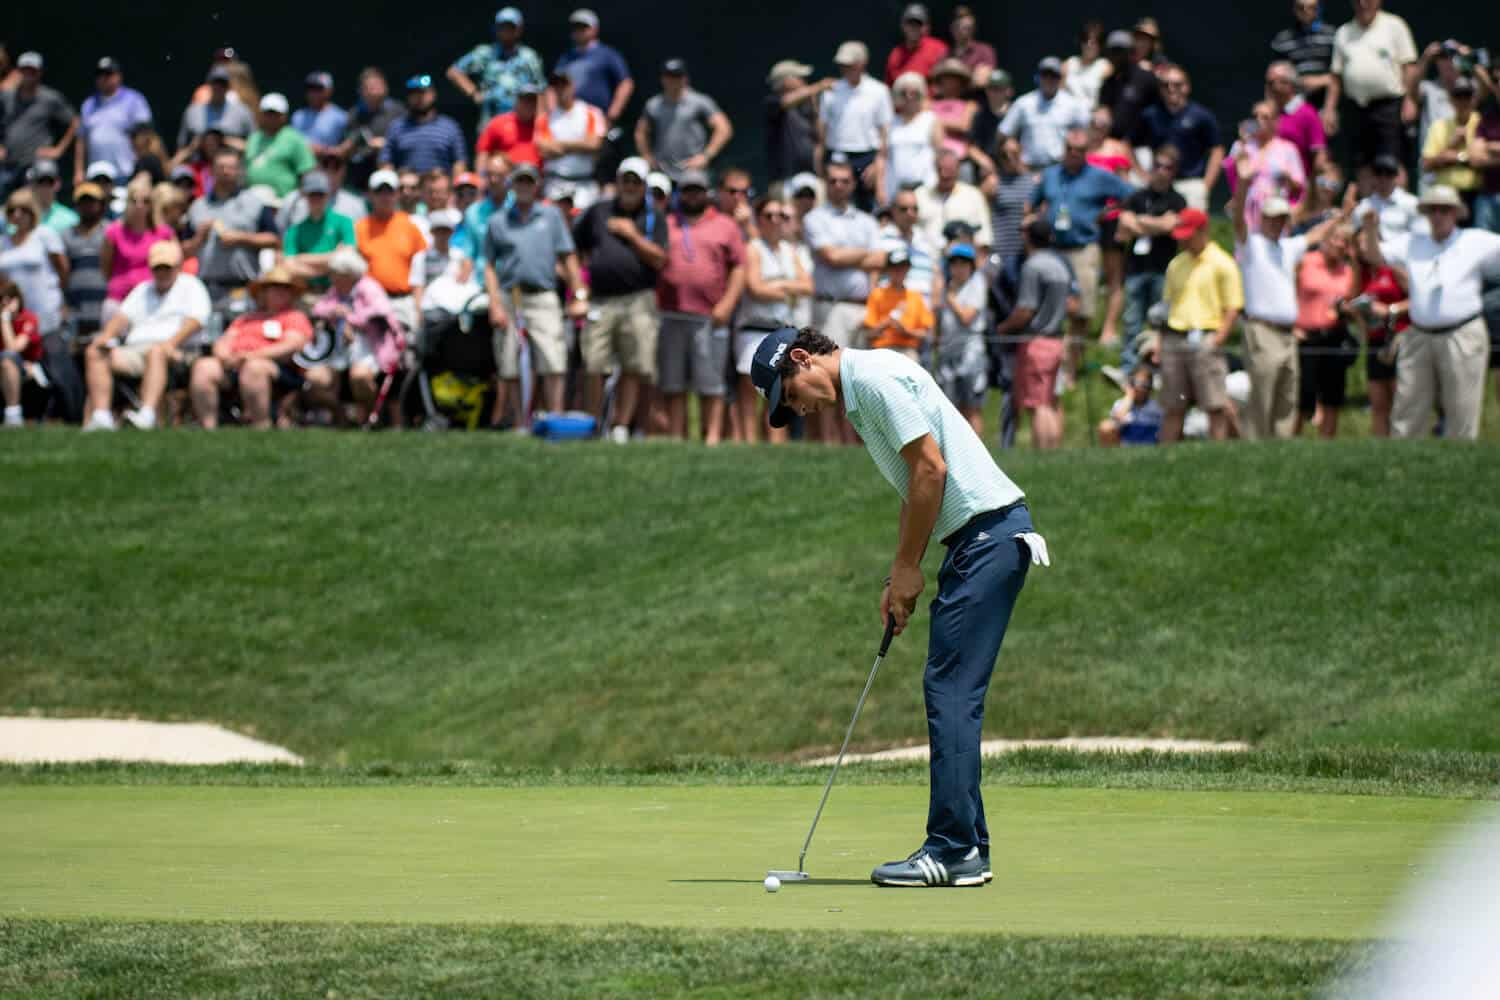 What Can the PGA Tour Learn from the European Tour?